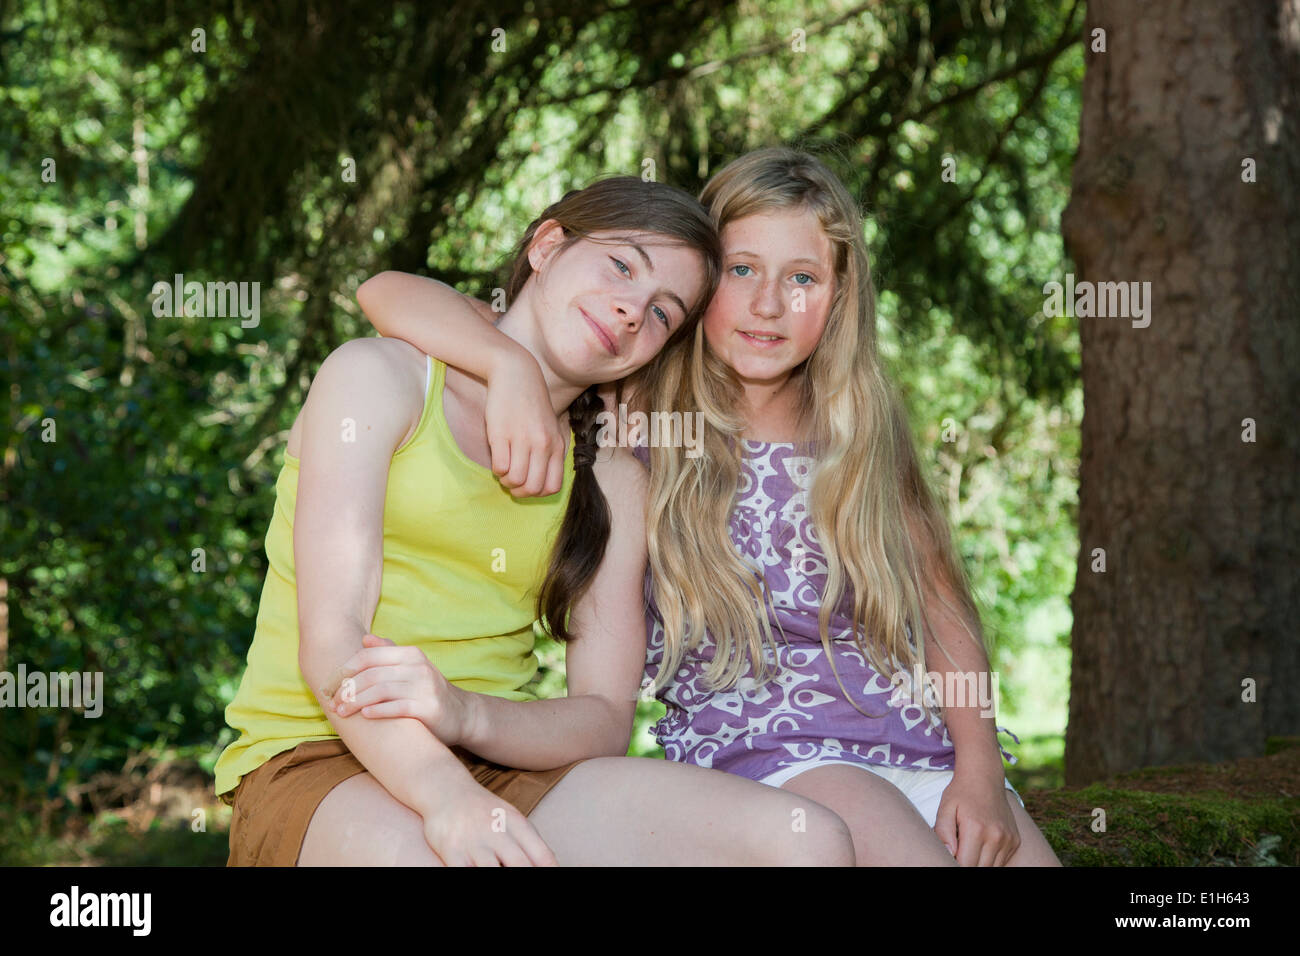 Teenagers sitting in garden with arm around - Stock Image